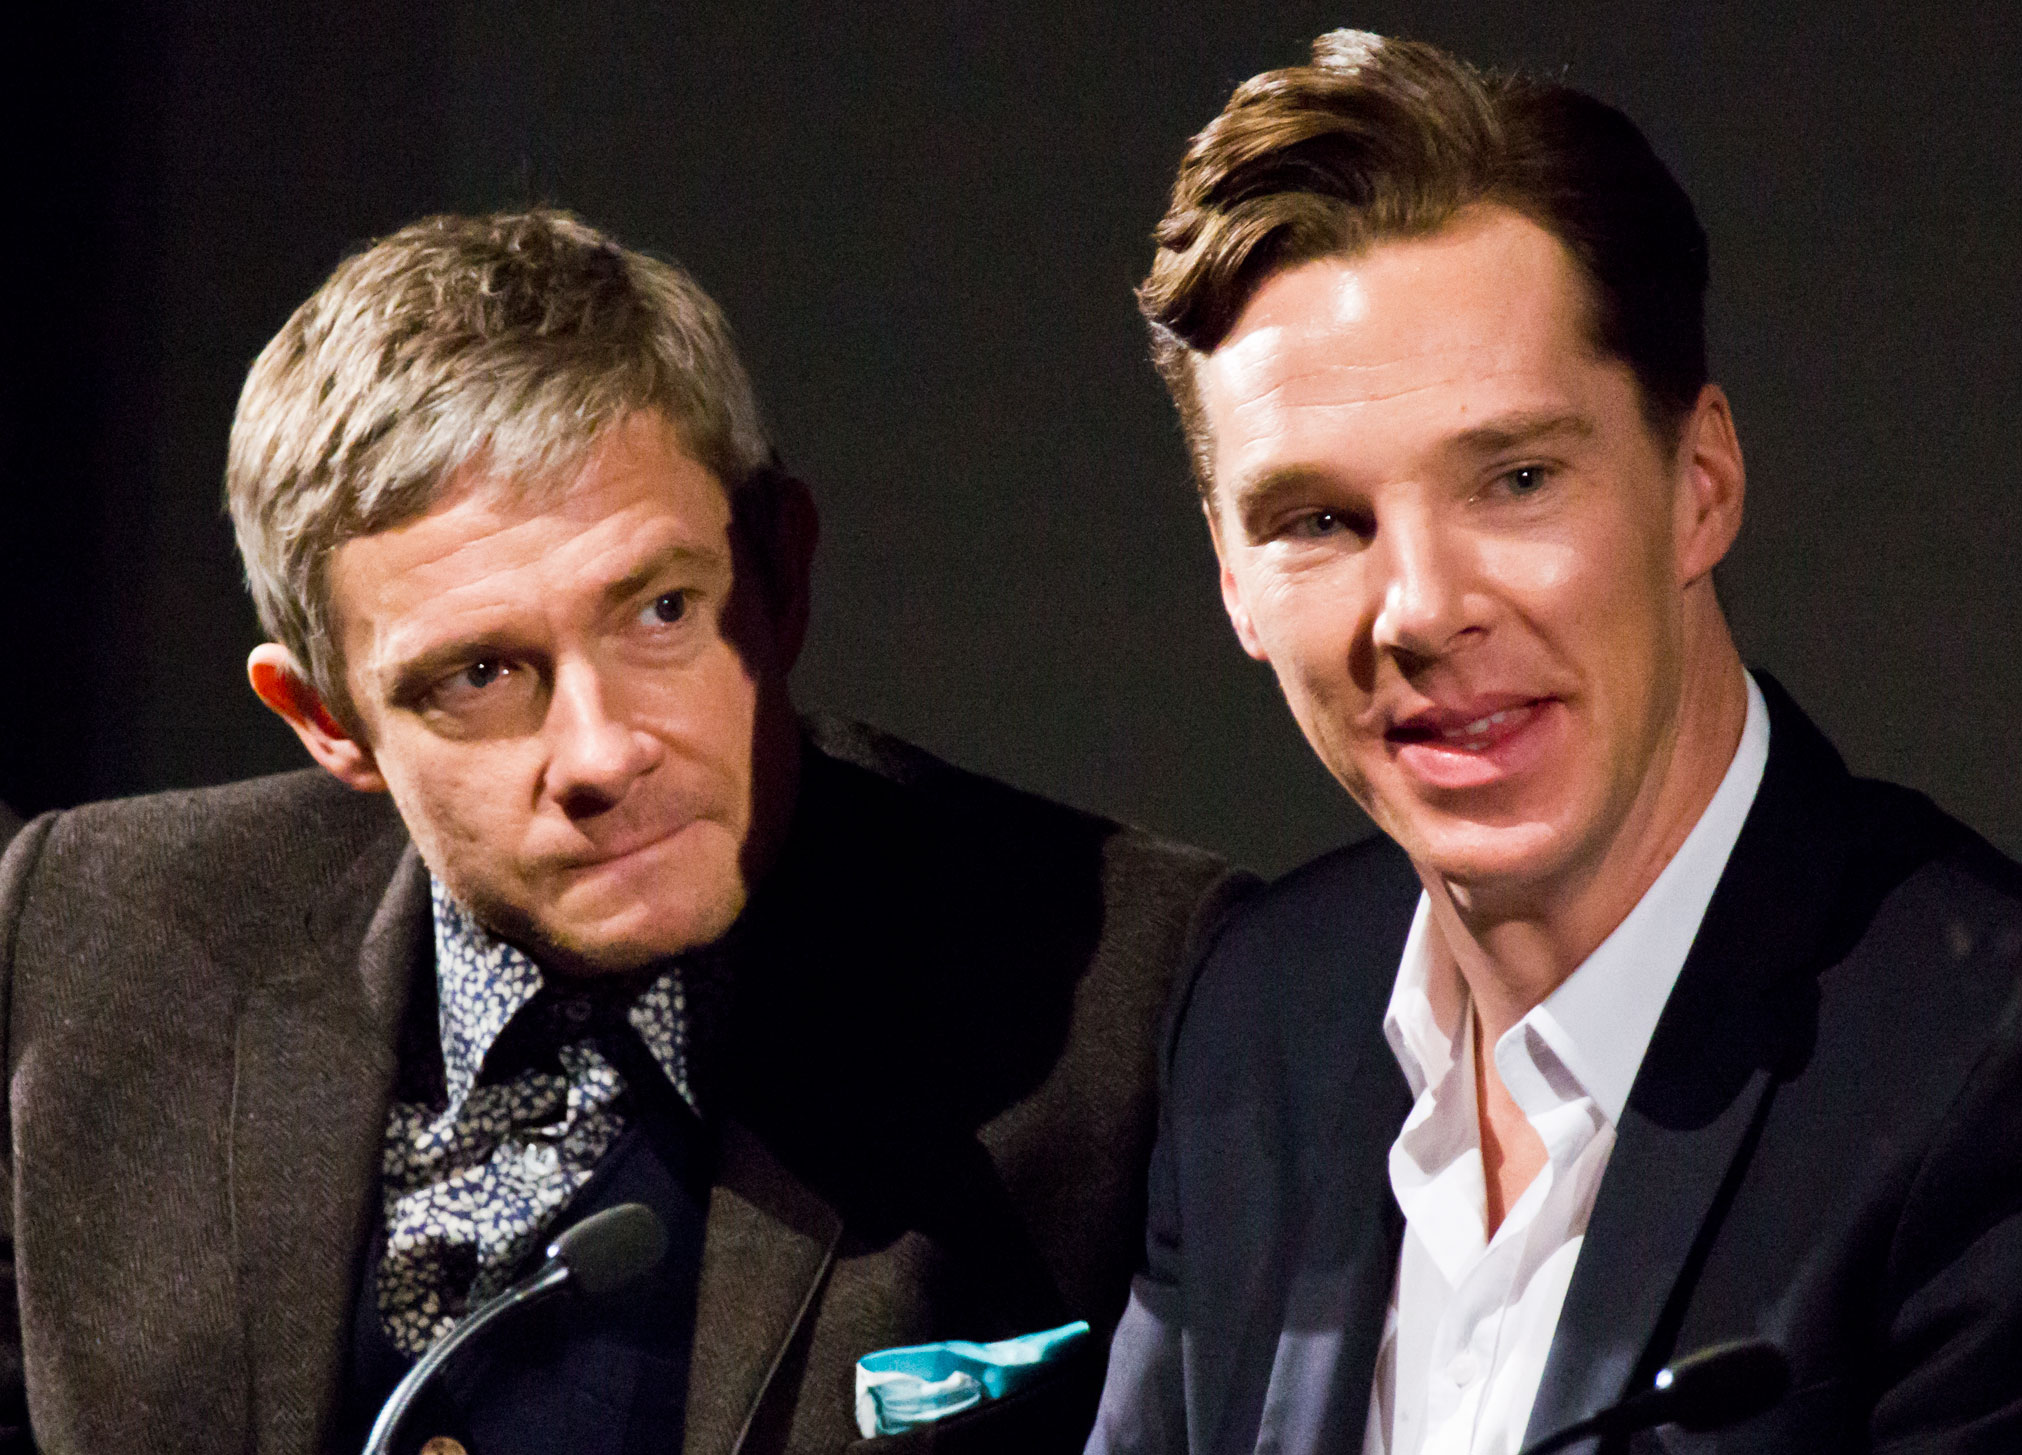 Sherlock Holmes and Smaug the Dragon, John Watson and Bilbo Baggins: Benedict Cumberbatch and Martin Freeman shine in both roles